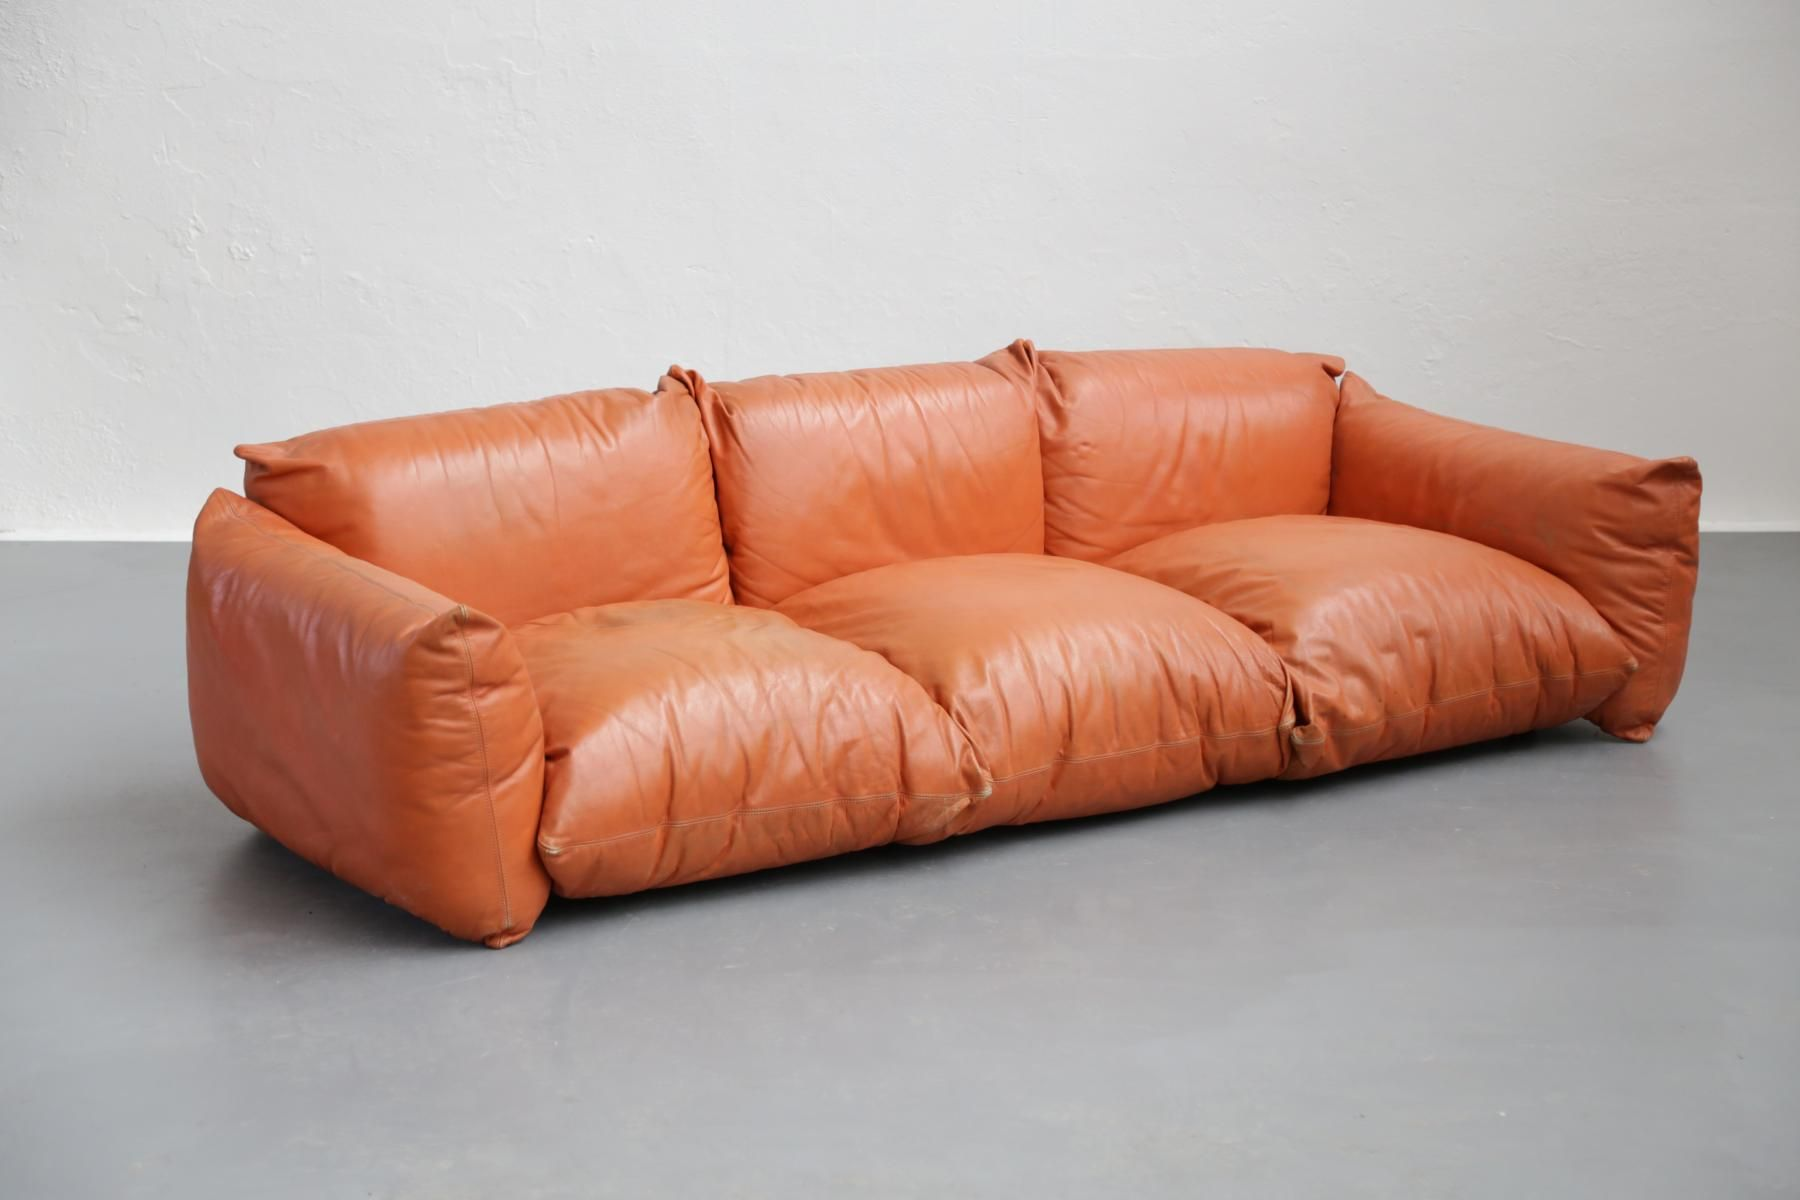 Vintage Italian Leather Sofa By Mario Marengo For Arflex 5 Italian Leather Sofa Vintage Sofa Minimalist Sofa